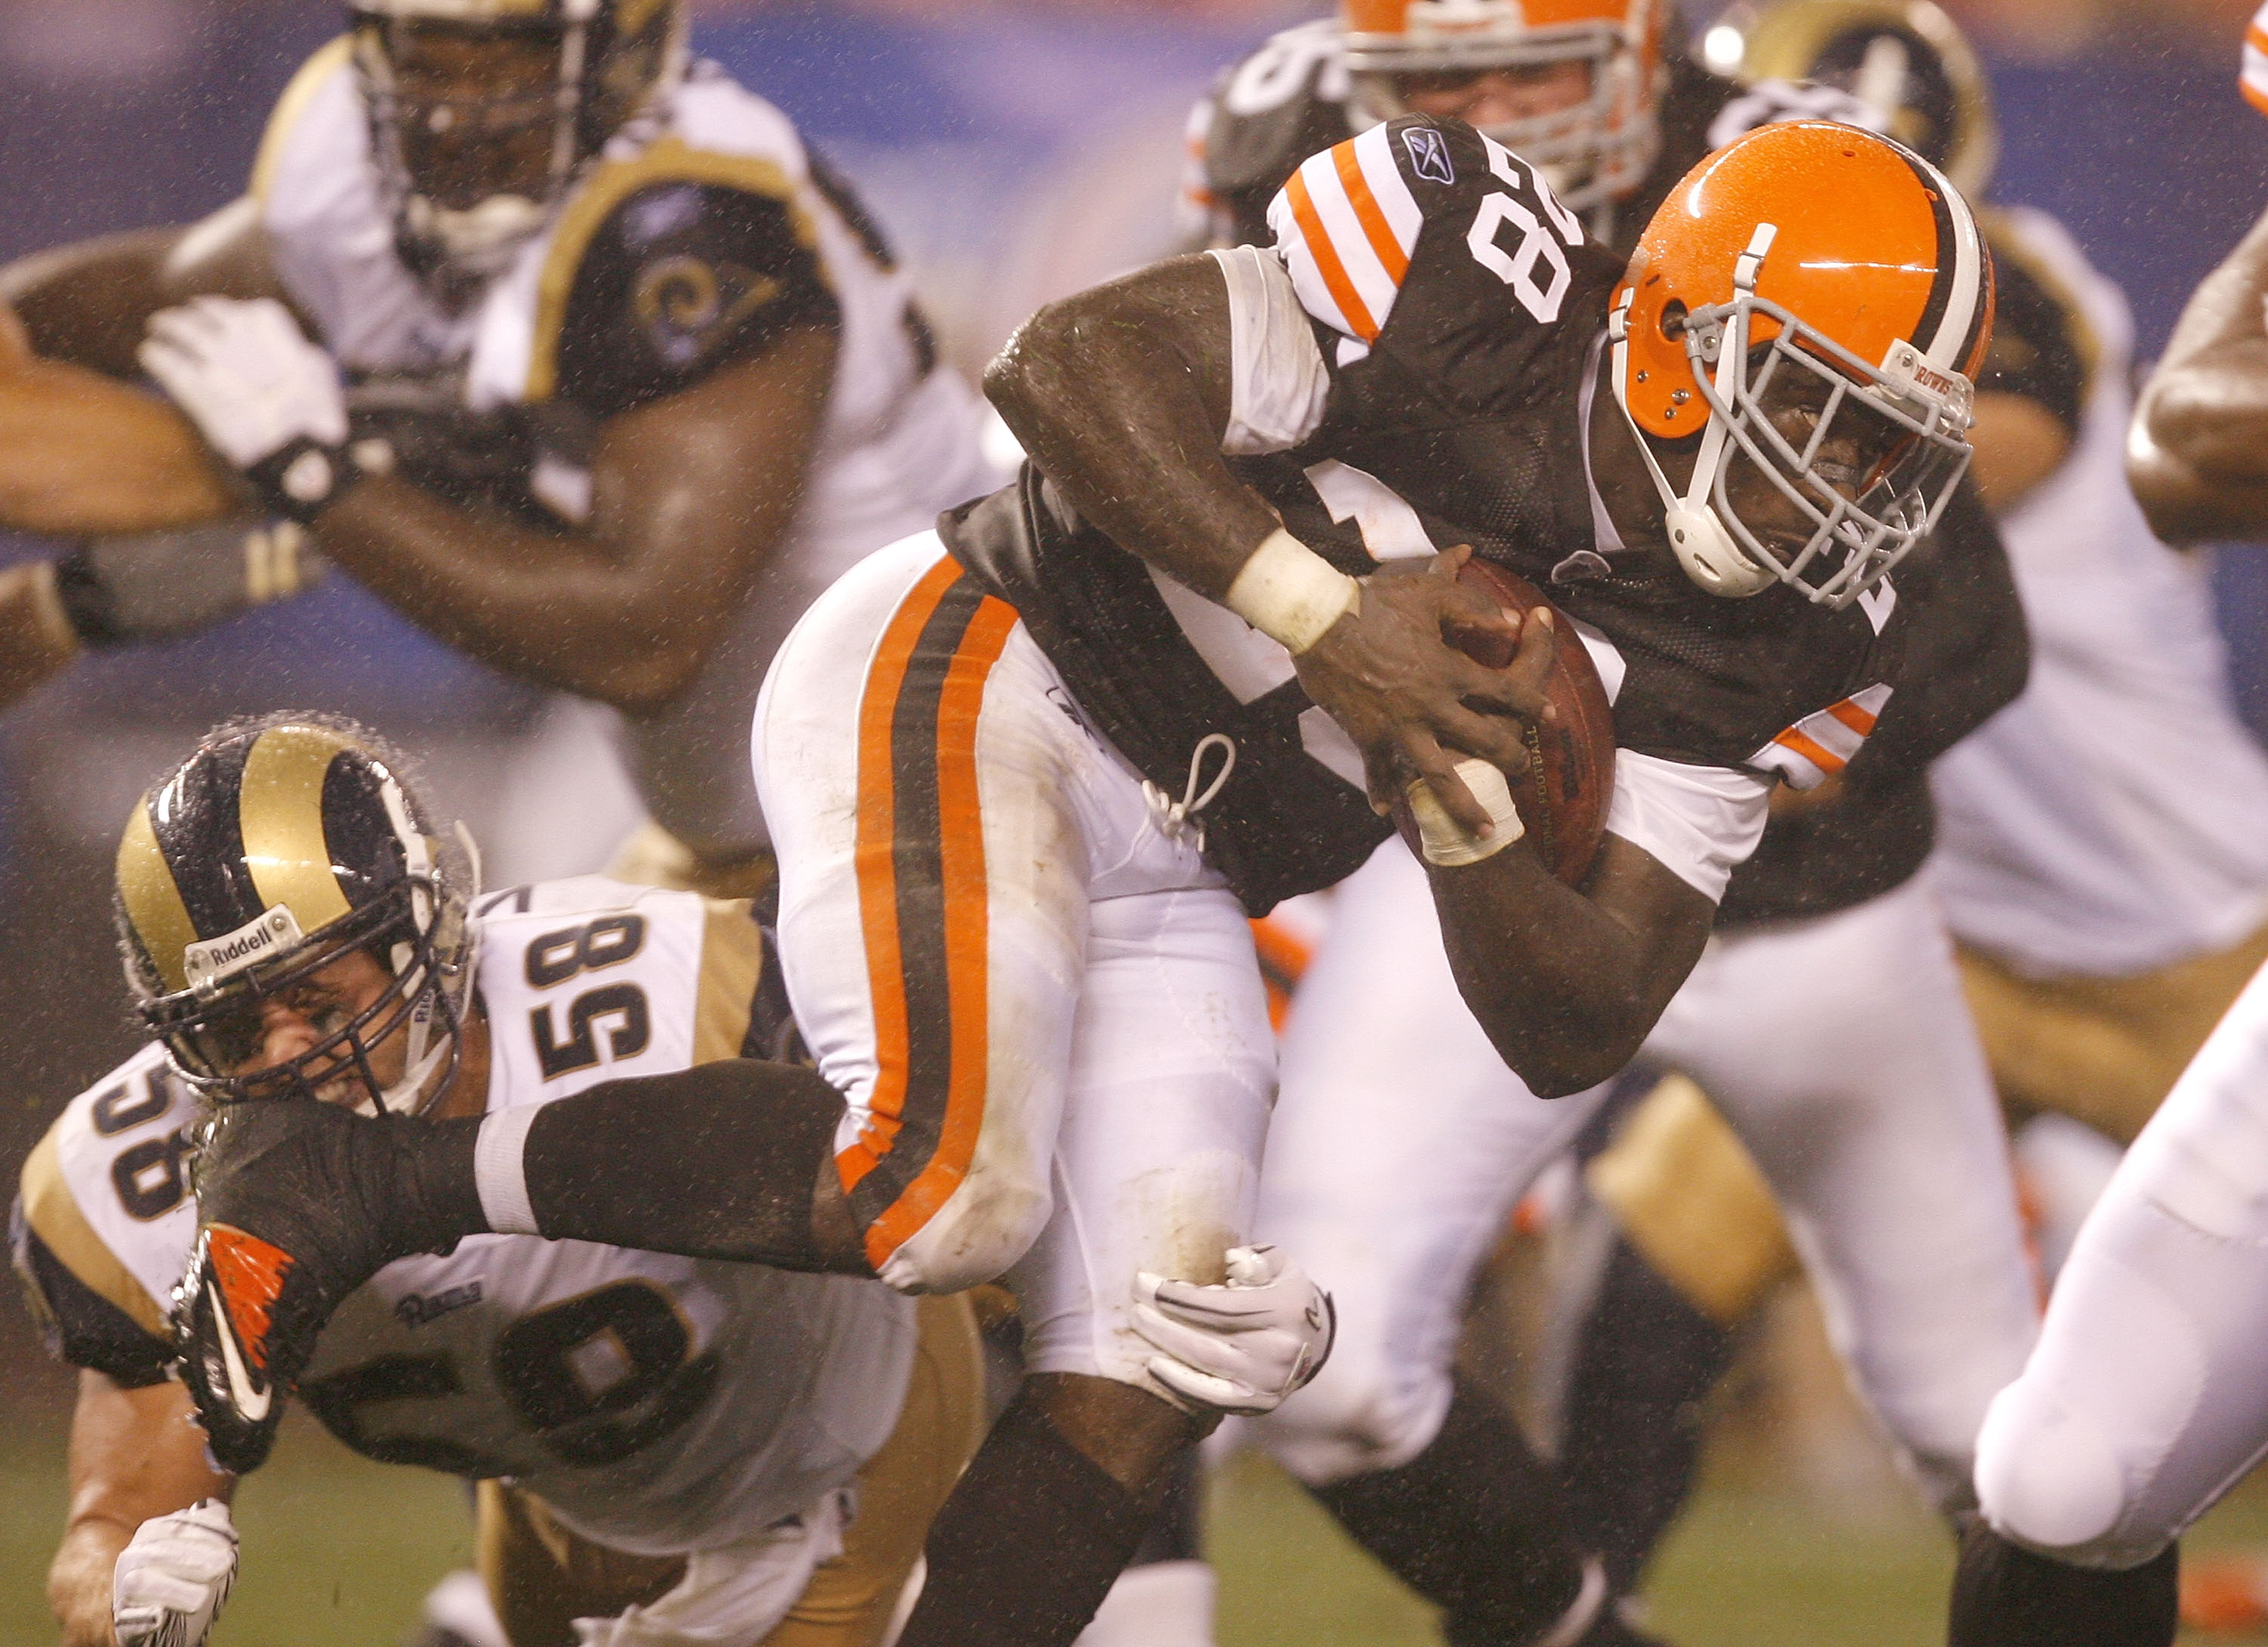 CLEVELAND - AUGUST 21:  James Davis #28 of the Cleveland Browns runs by David Vobora #58 of the St. Louis Rams at Cleveland Browns Stadium on August 21, 2010 in Cleveland, Ohio.  (Photo by Matt Sullivan/Getty Images)